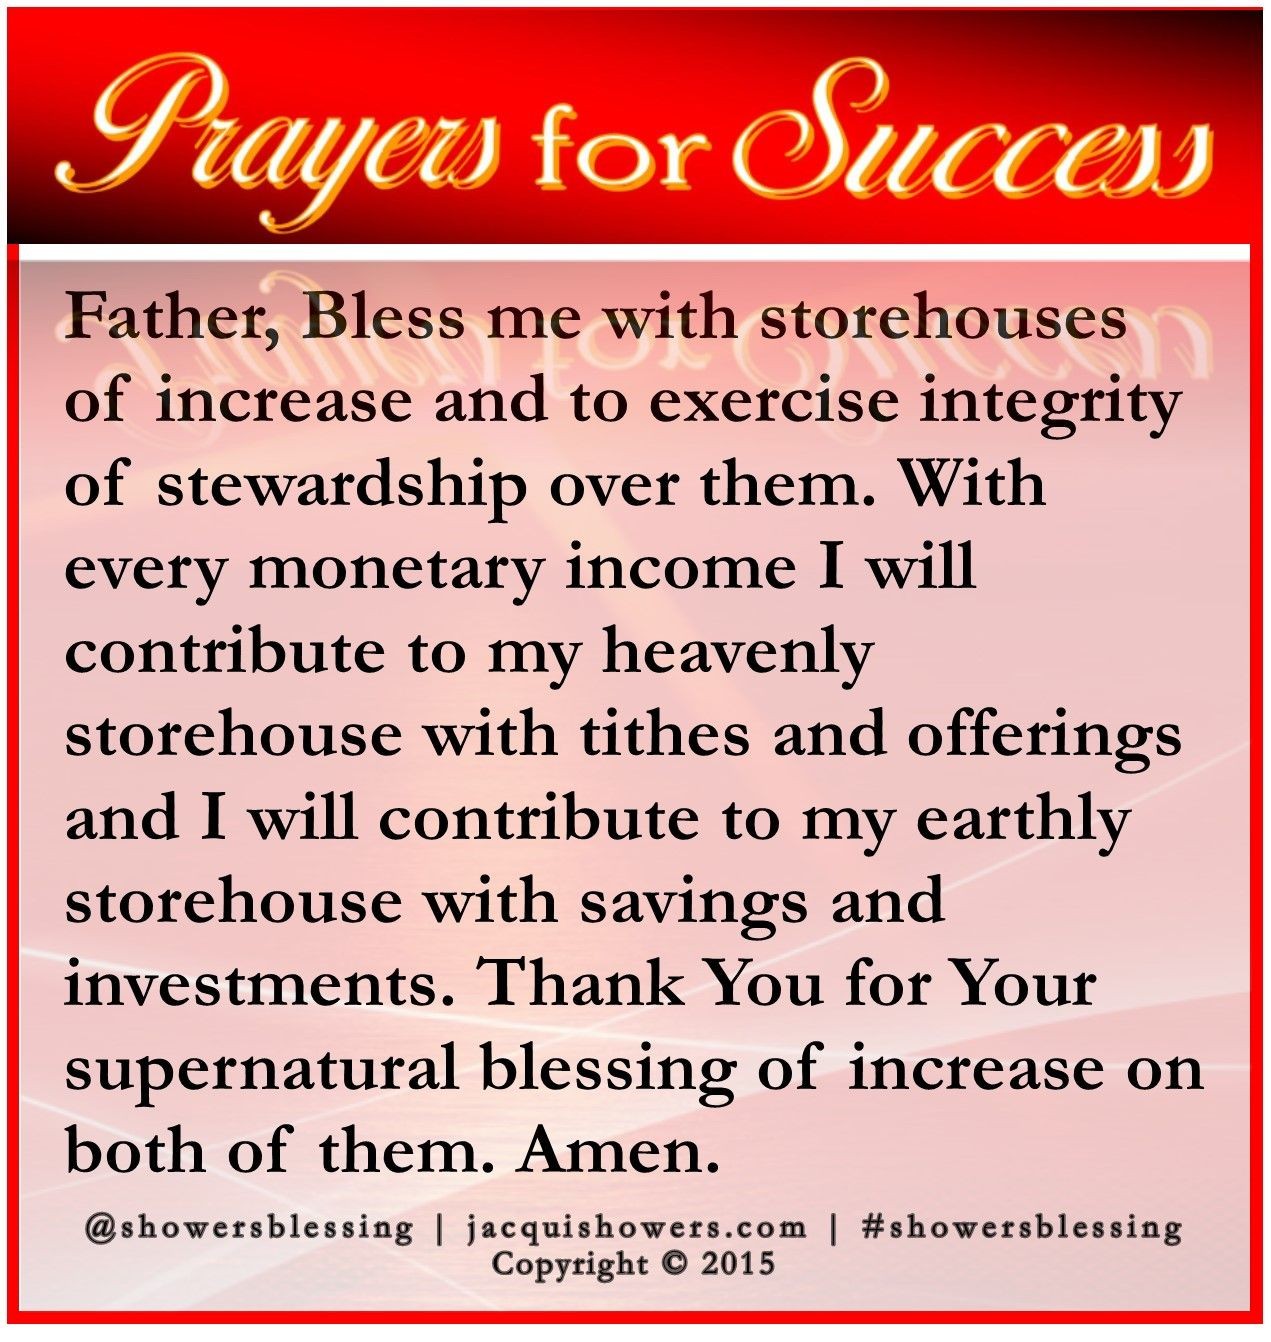 PRAYER FOR SUCCESS Aug 17 | Prayers for Whatever Need